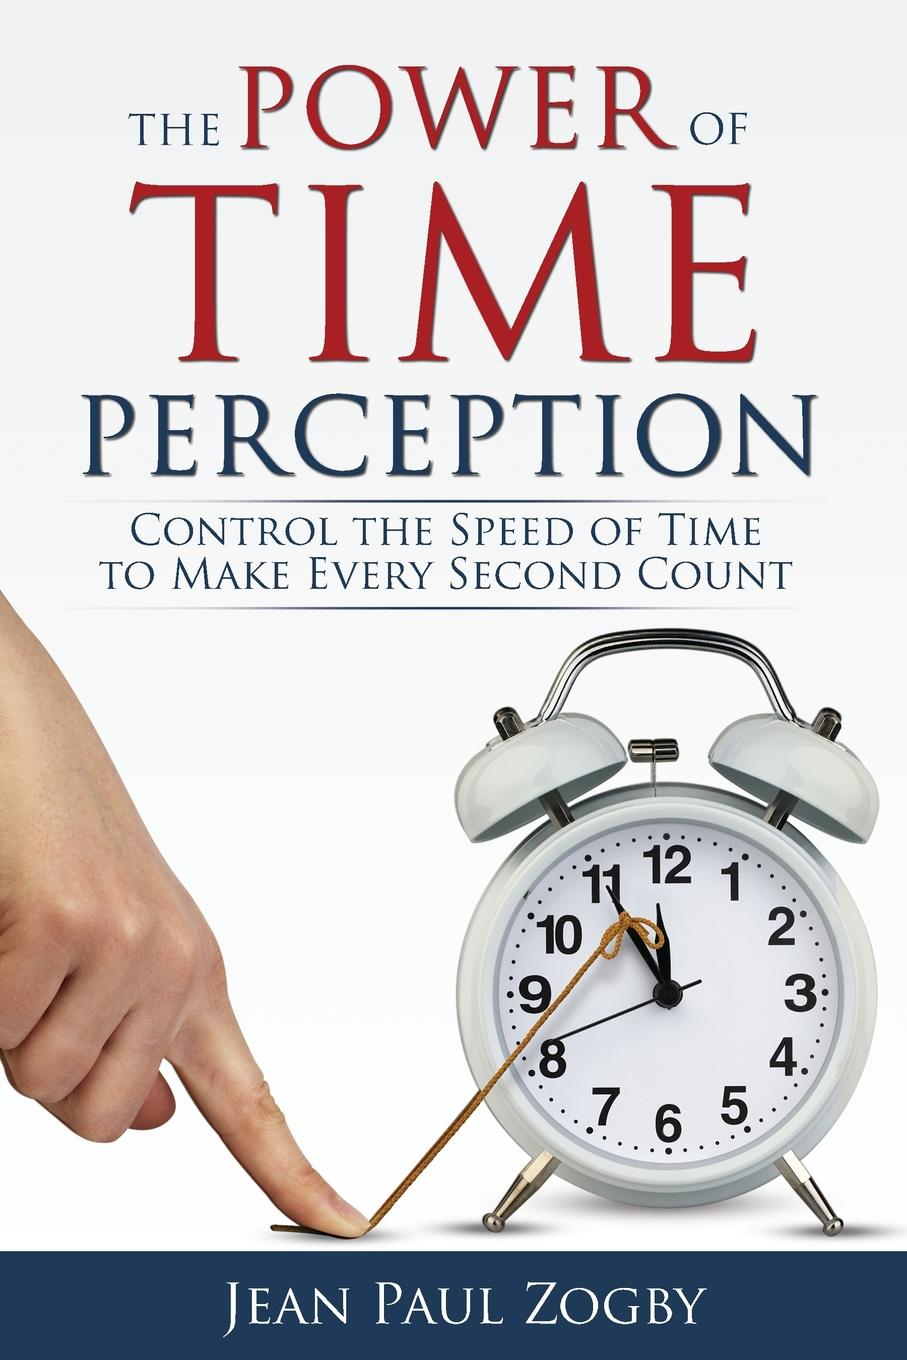 Jean Paul Zogby The Power of Time Perception. Control the Speed of Time to Make Every Second Count michelle hillier inspired magic your guide to transforming your life with the power of the mind